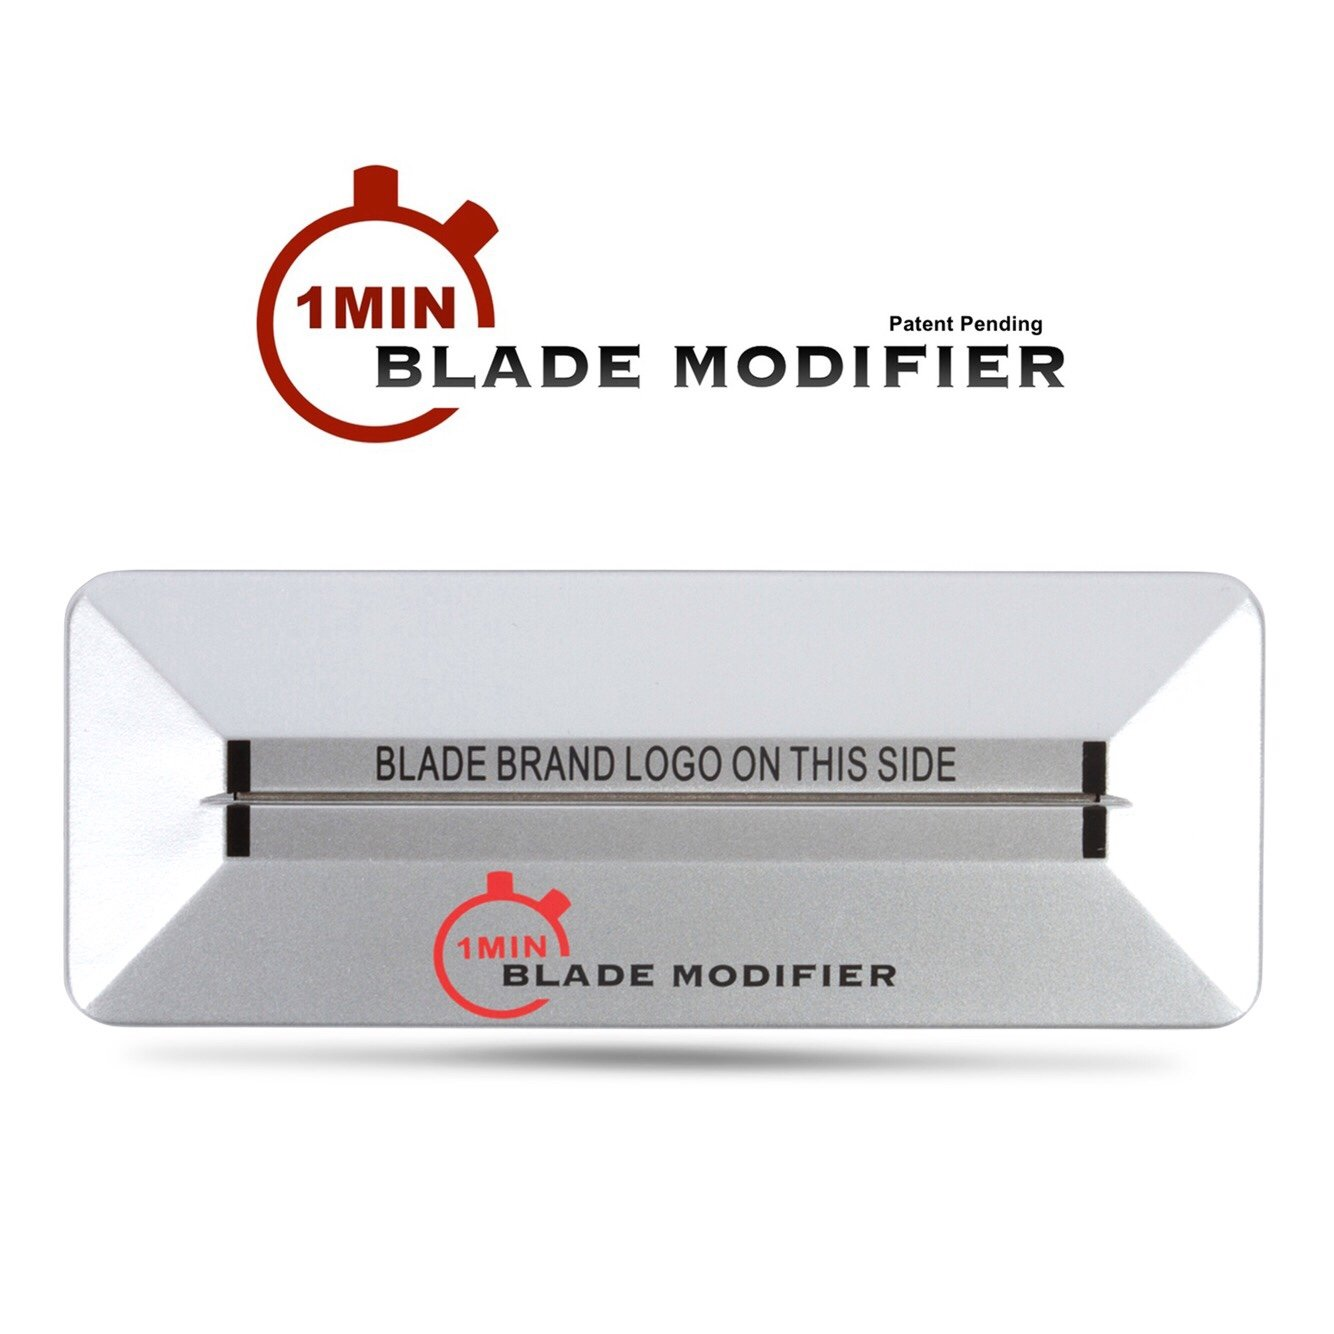 1Min Blade Modifier by The Rich Barber | 1 Minute Clipper Sharpener Tool for Andis, Wahl, Oster, BaByliss Trimmer Blades & More